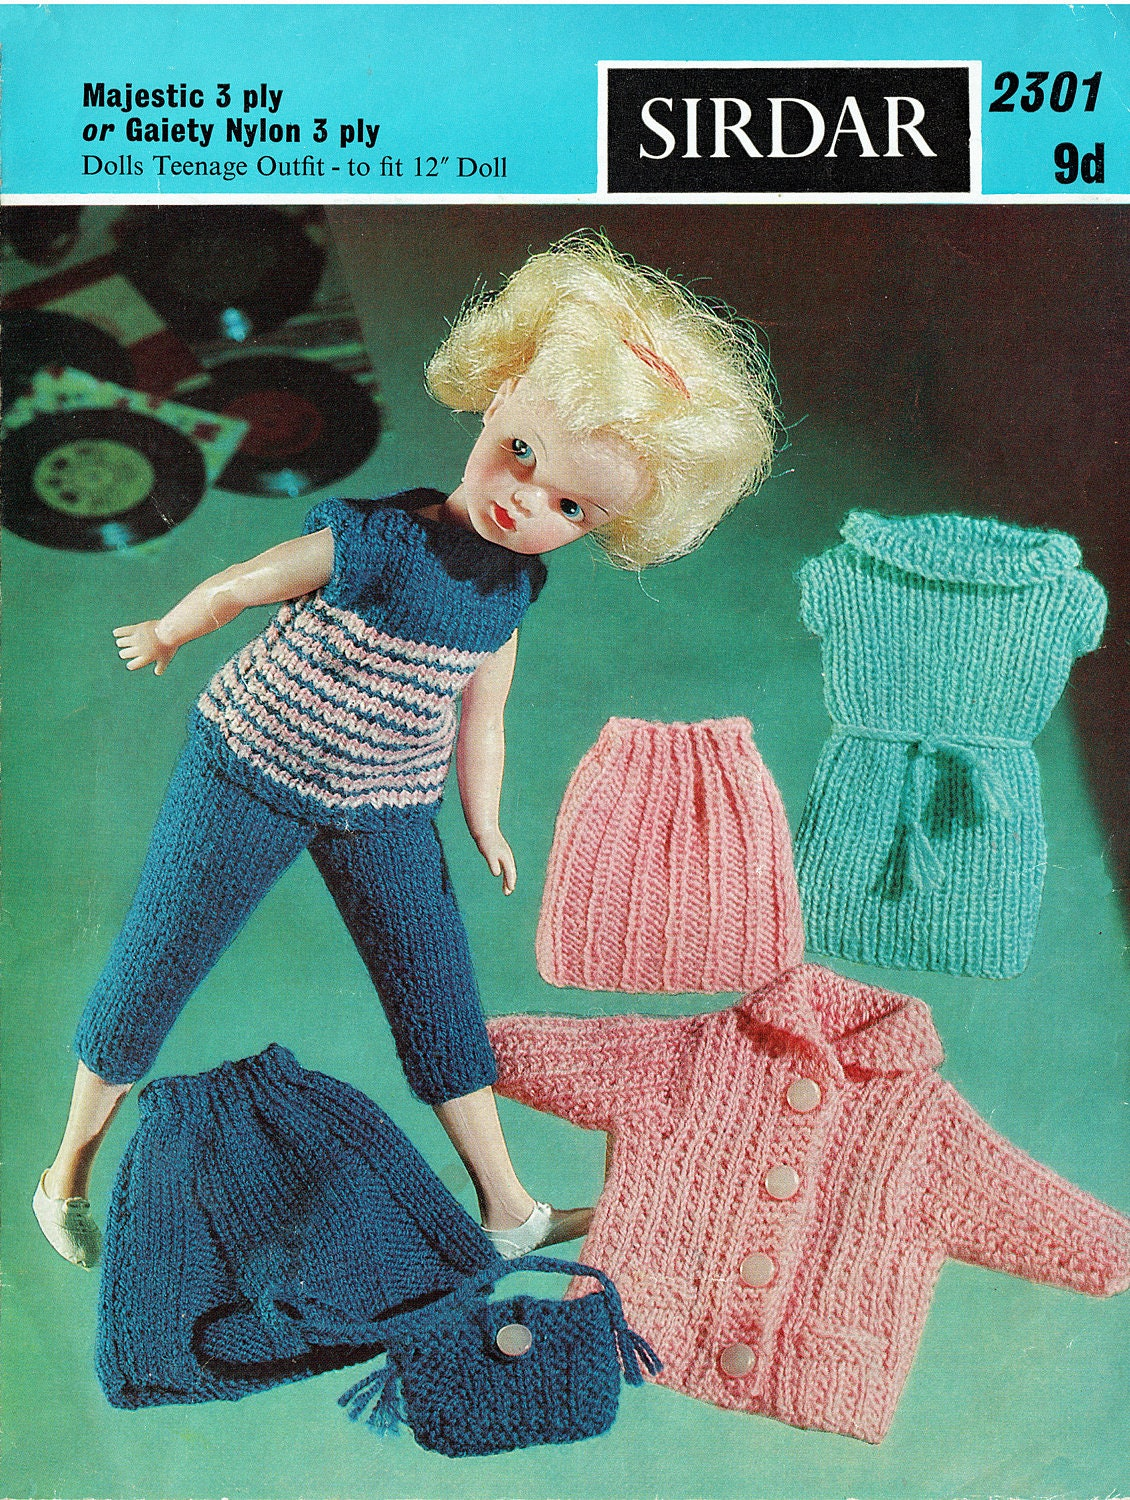 Sirdar Knitting Patterns For Dolls Clothes : PDF Vintage Sindy Barbie Doll Clothes Knitting Pattern ...